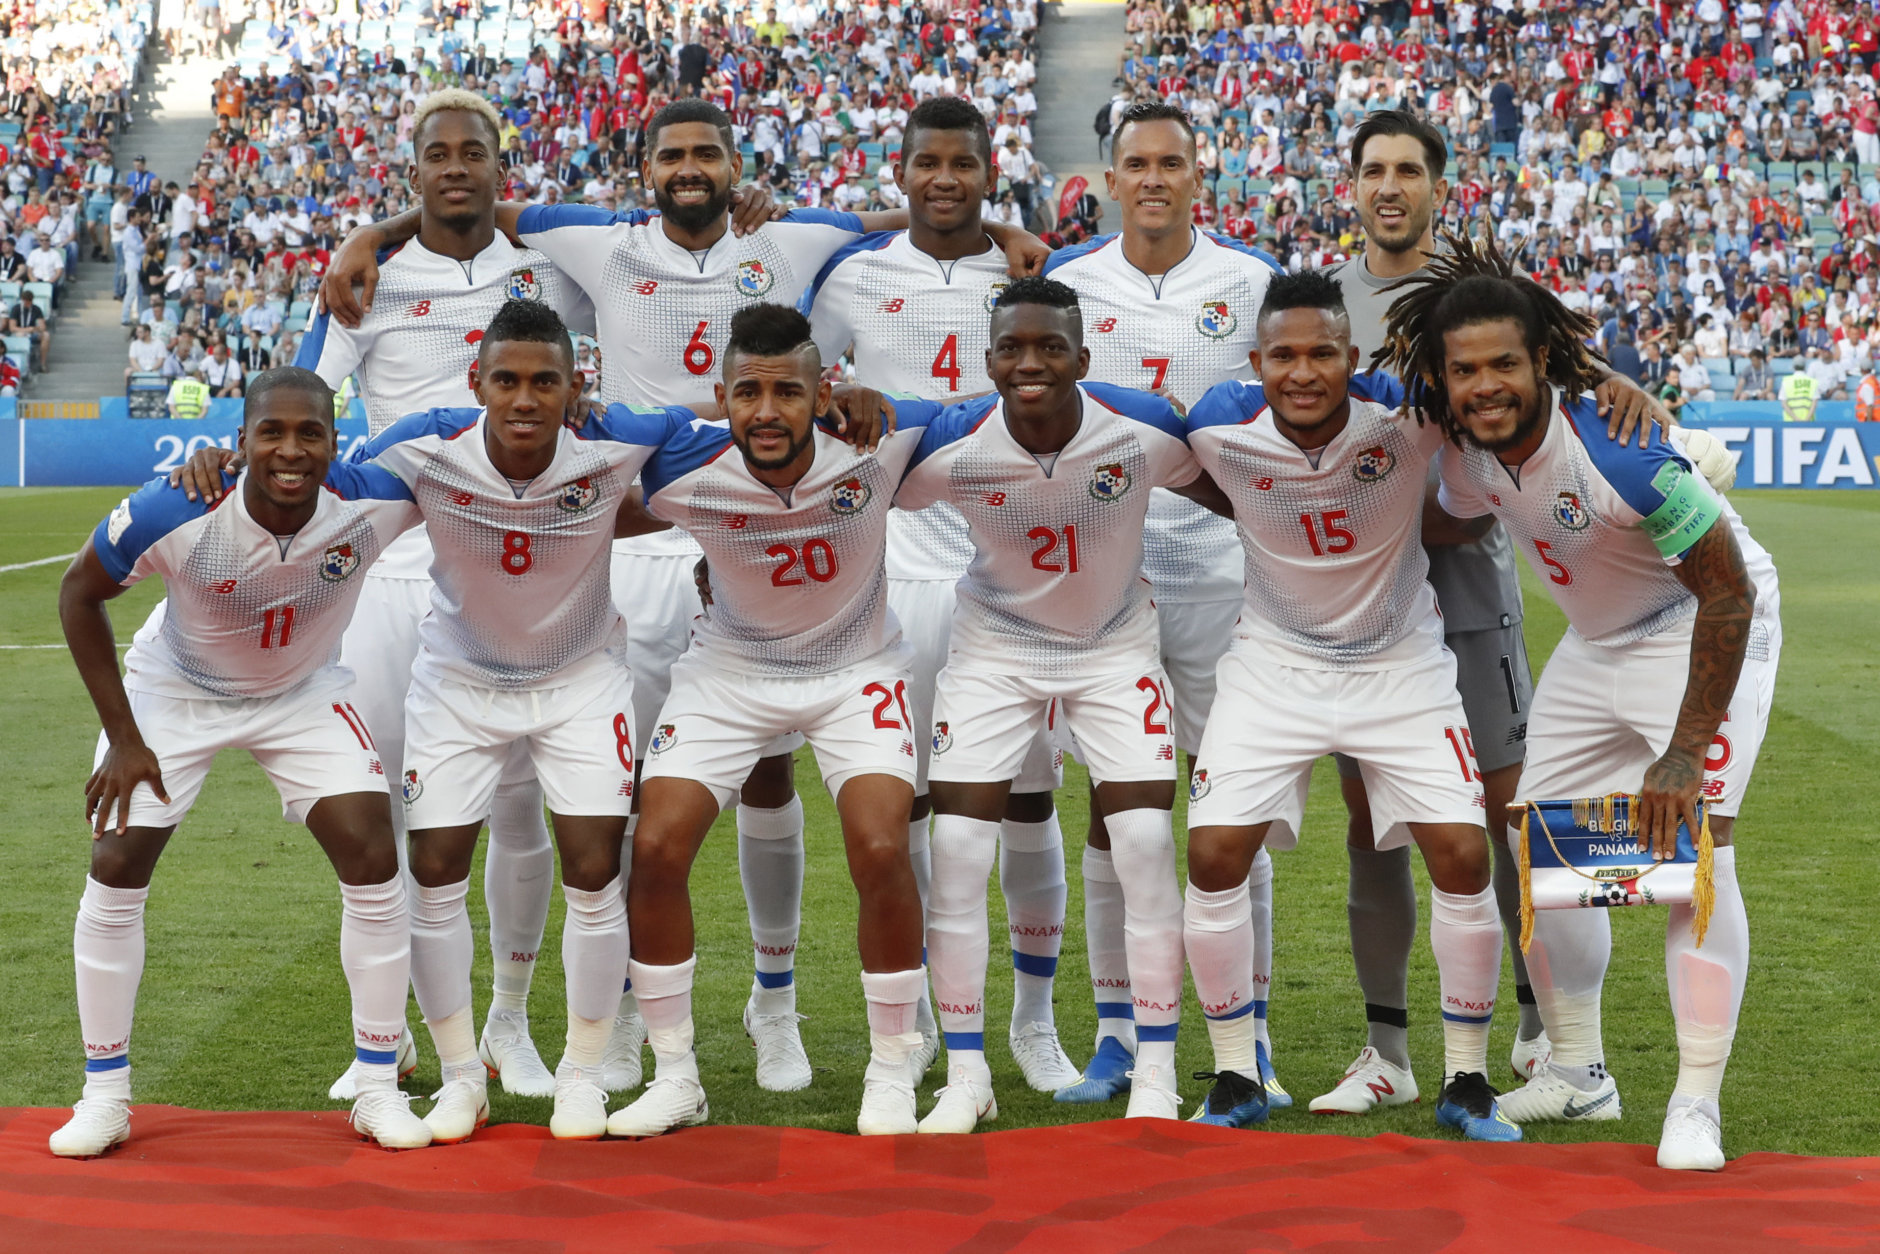 Panama's team poses for a picture prior to the start of the group G match between Belgium and Panama at the 2018 soccer World Cup in the Fisht Stadium in Sochi, Russia, Monday, June 18, 2018. (AP Photo/Antonio Calanni)